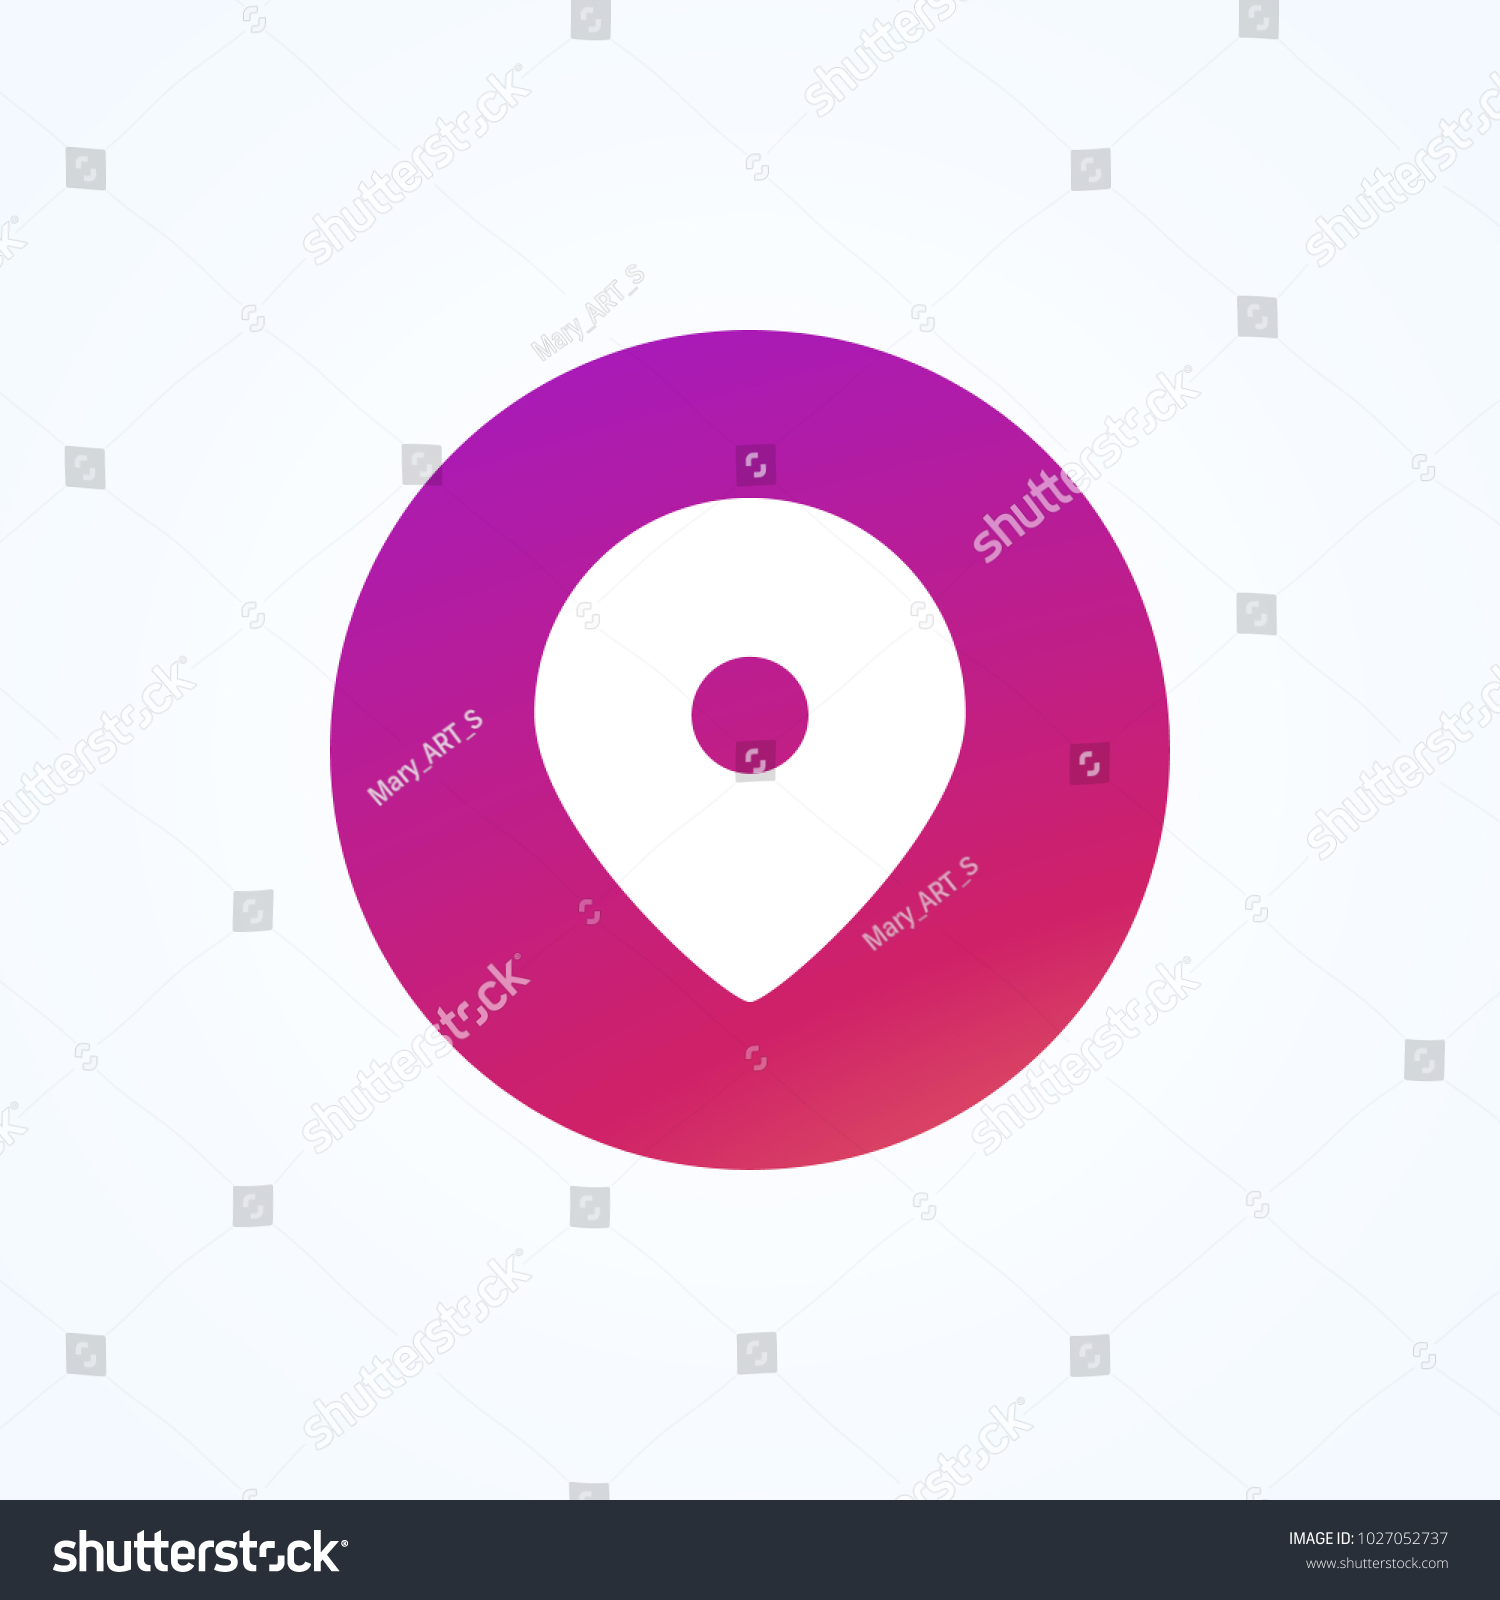 Instagram symbol text gallery symbol and sign ideas map location colorful gradient icon symbol stock vector 1027052737 map location colorful gradient icon symbol button buycottarizona